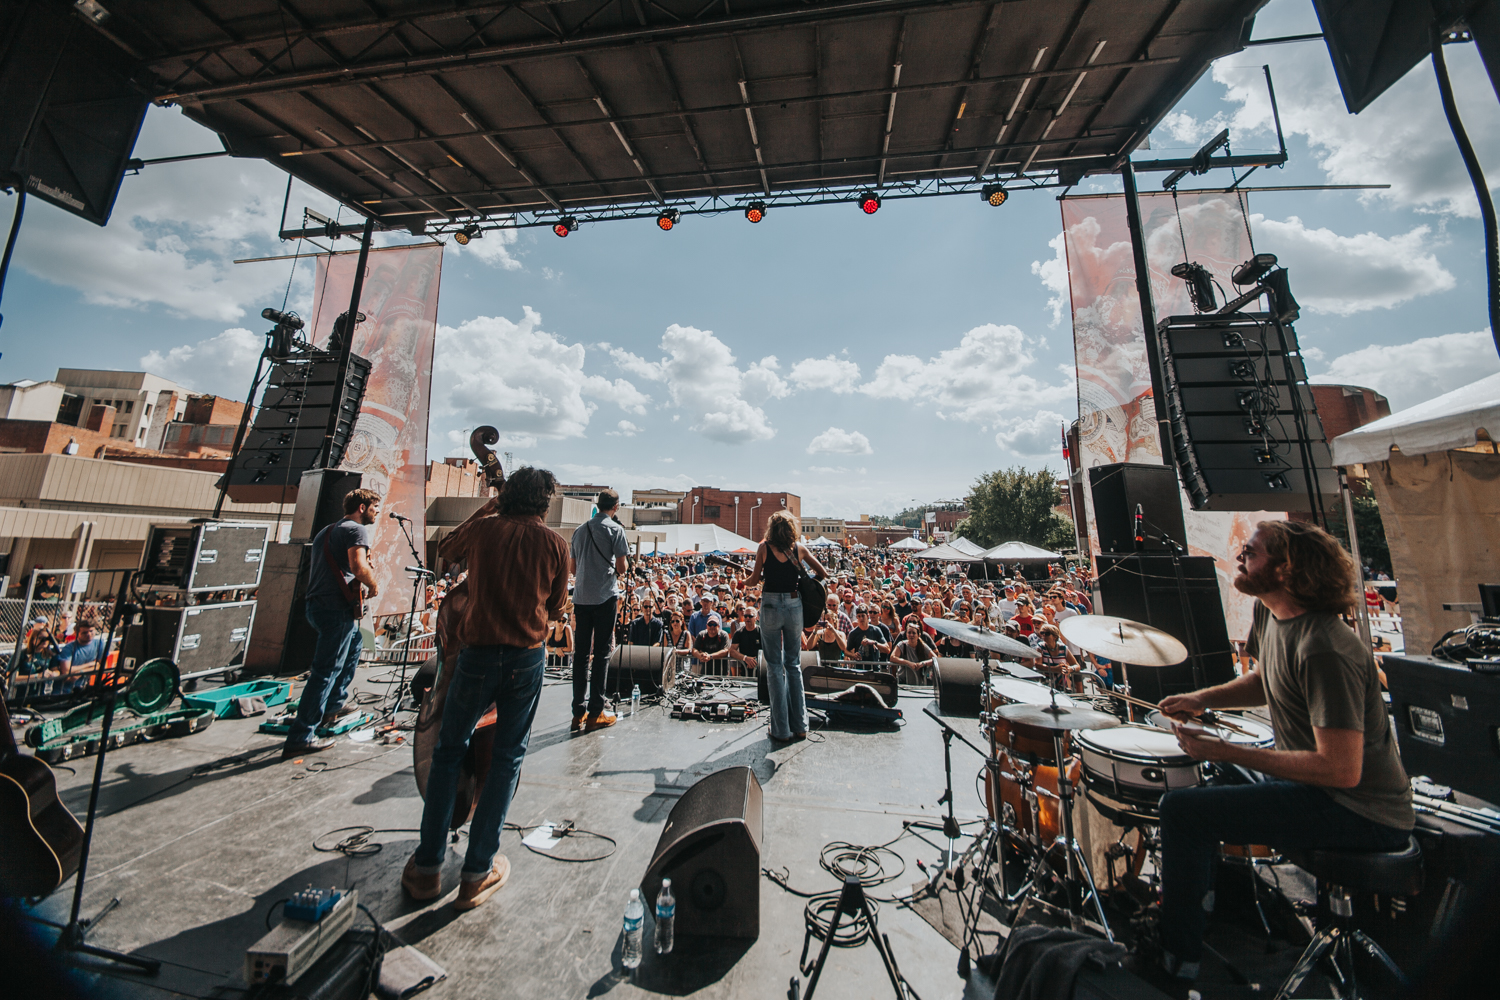 Bristol Rhythm & Roots Reunion in downtown Bristol, TN